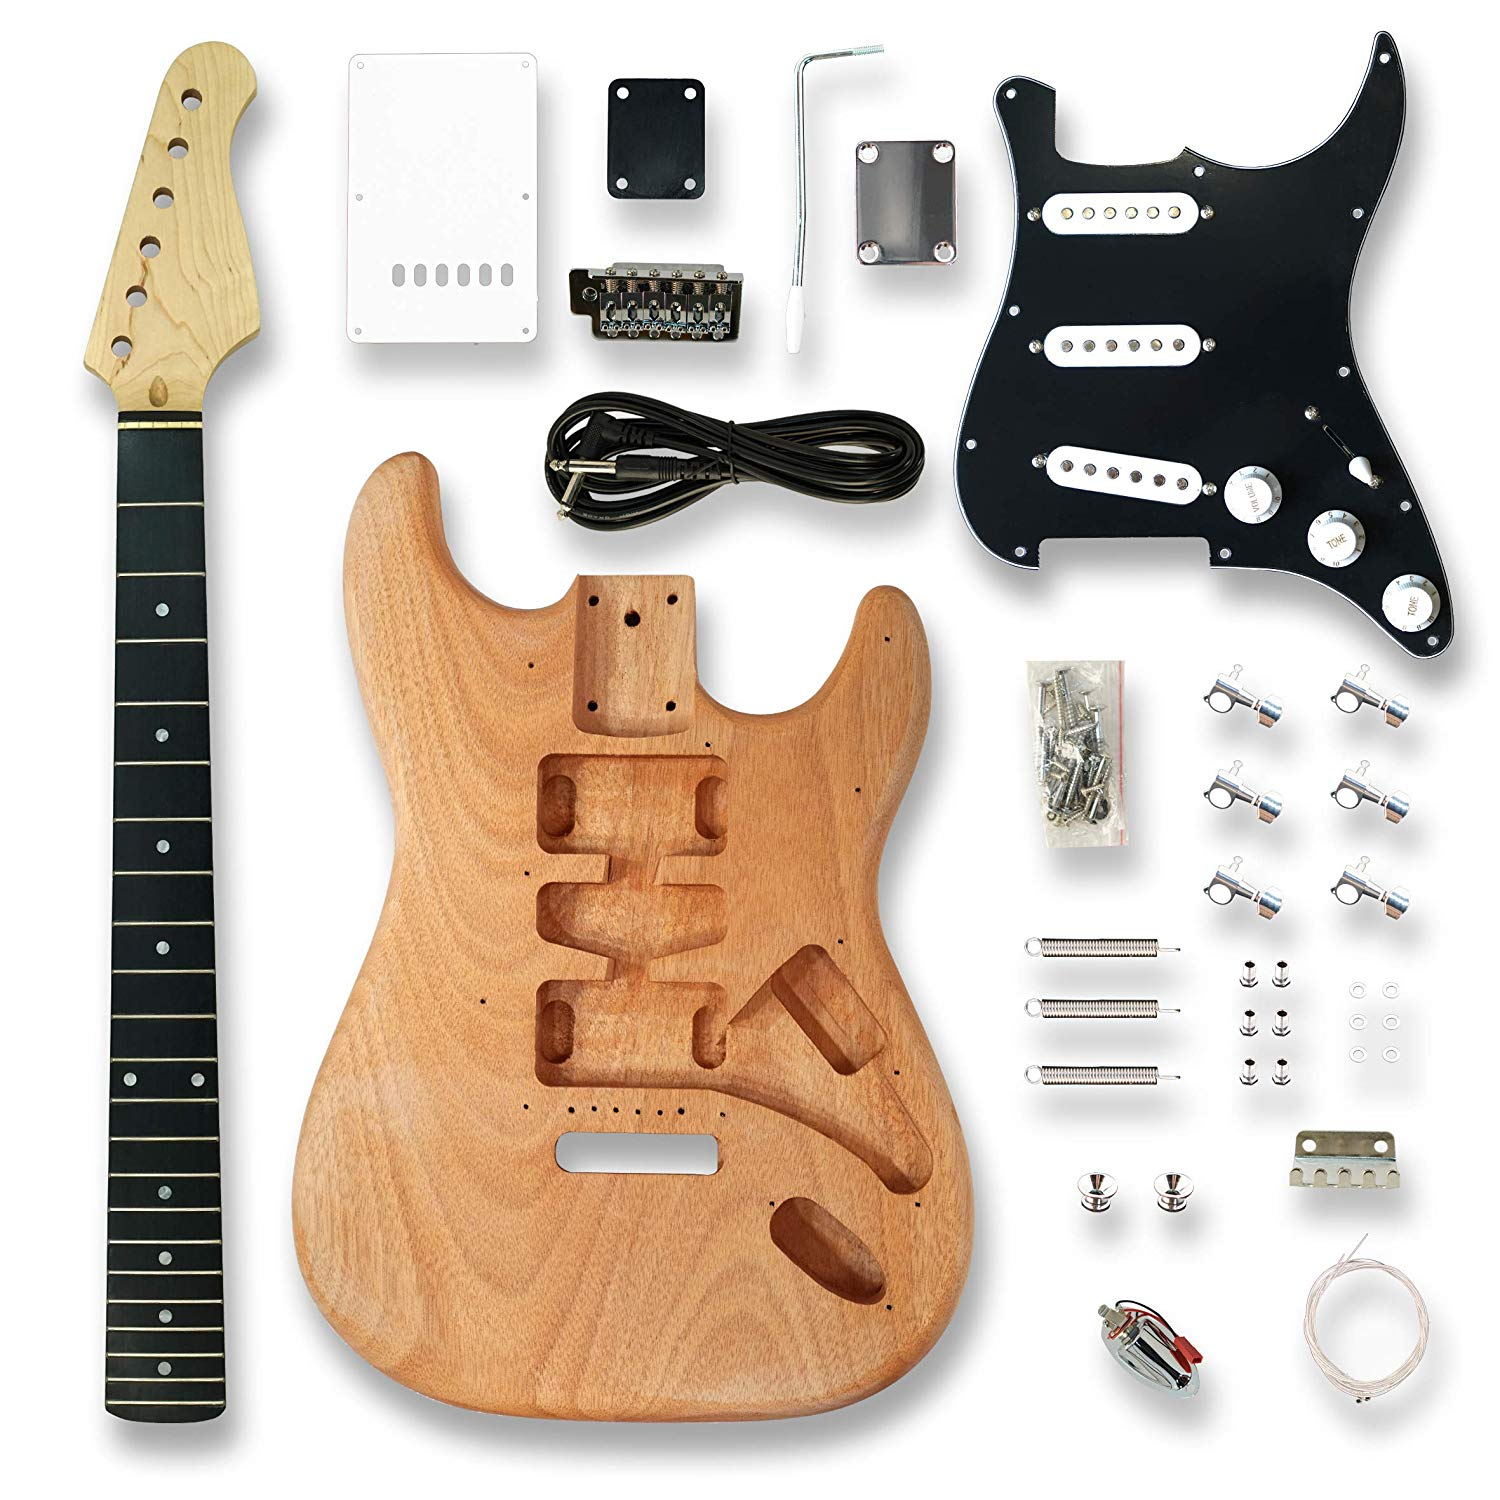 Best DIY Guitar Kit for Beginners in 2019